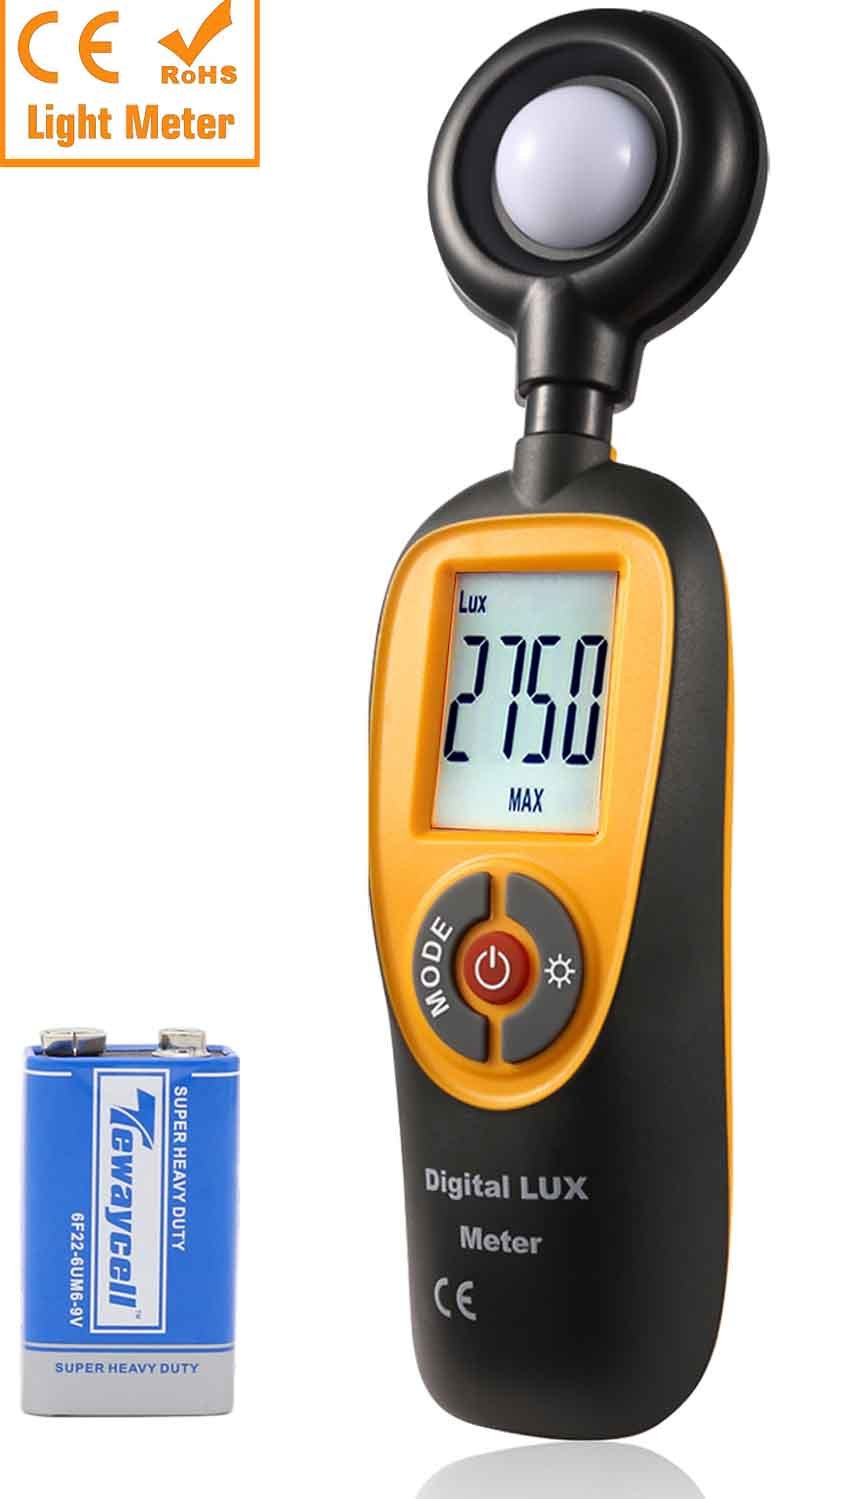 HTI@XT Instrument Light Meter, Digital handheld Foot Candle Meter with Lcd Display,Actionometer Illuminance Measuring Range 0.1-200,000 Lux/0.01-20,000 Fc (One 9V Battery Included)